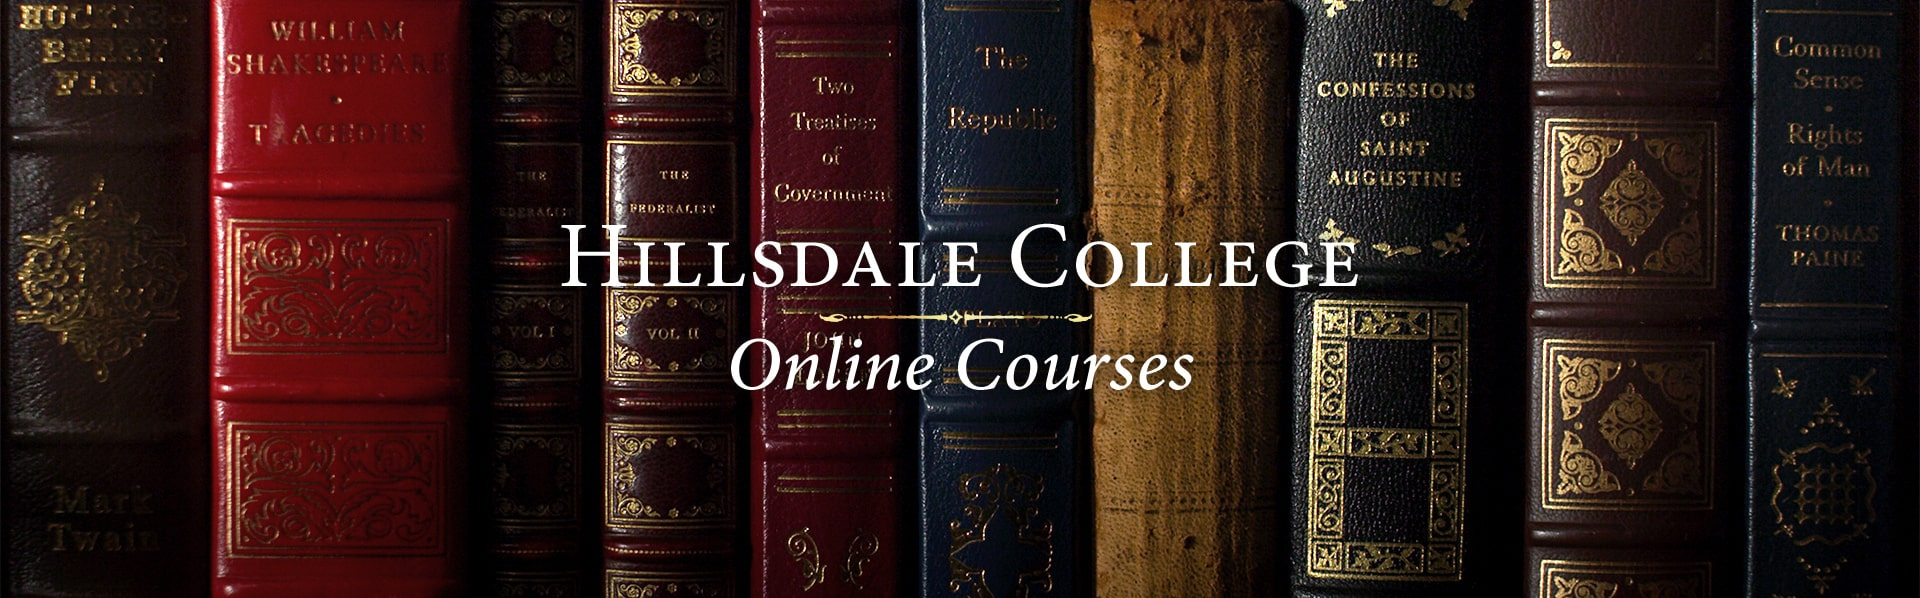 Online Courses TV ad